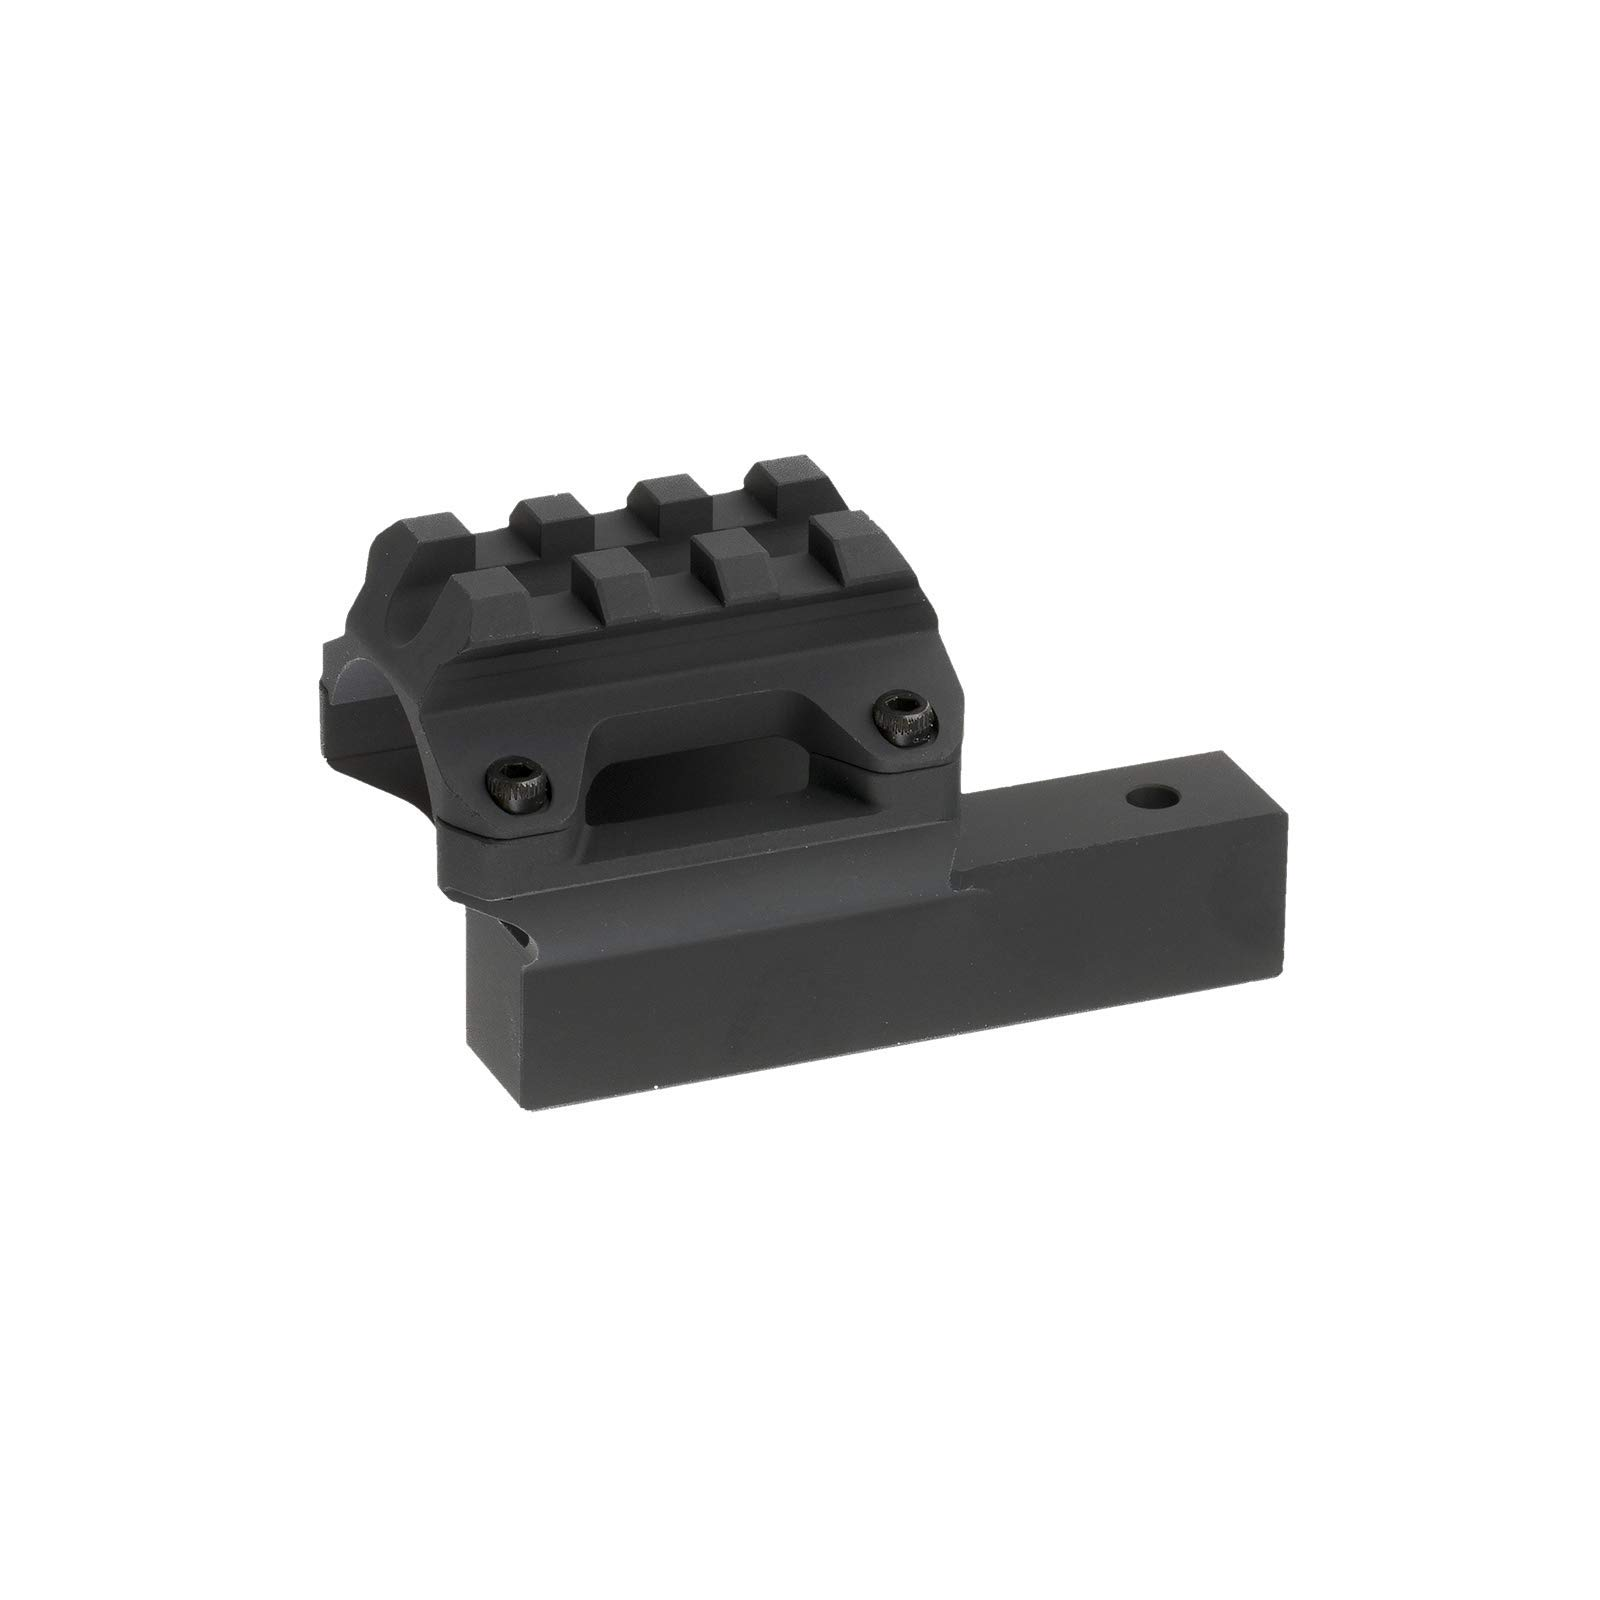 Magpul X-22 Backpacker Optic Mount Black by Magpul